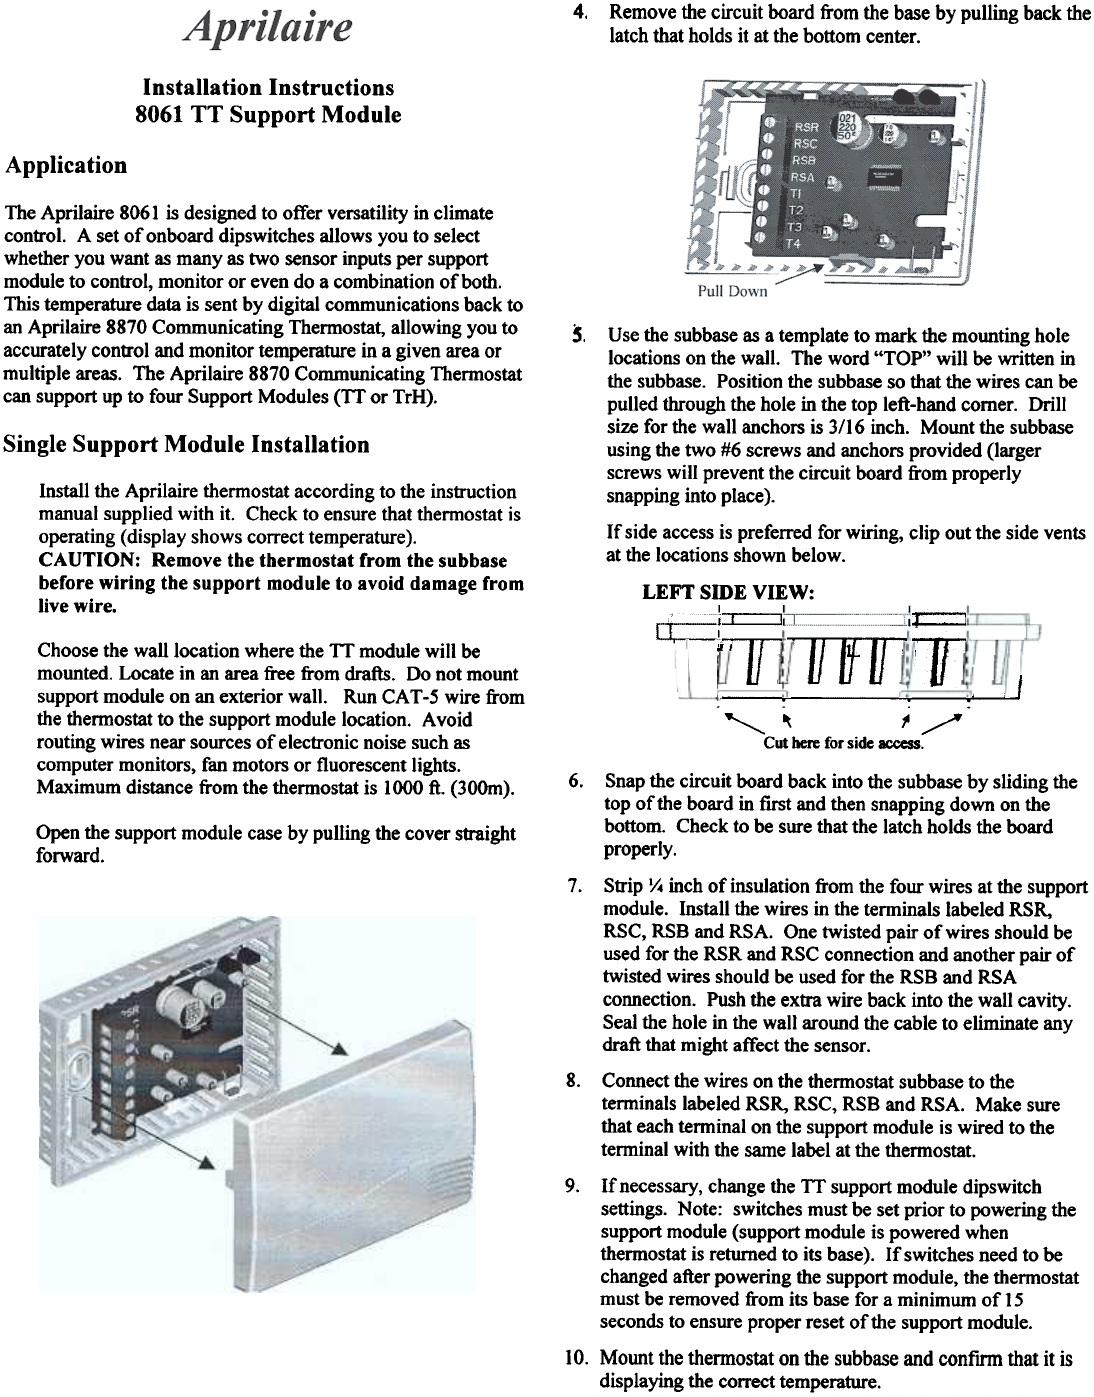 Aprilaire Thermostat 8061 User Guide Manualsonlinecom Wiring Diagram 4 Remove The Circuit Board From Base By Pulling Back